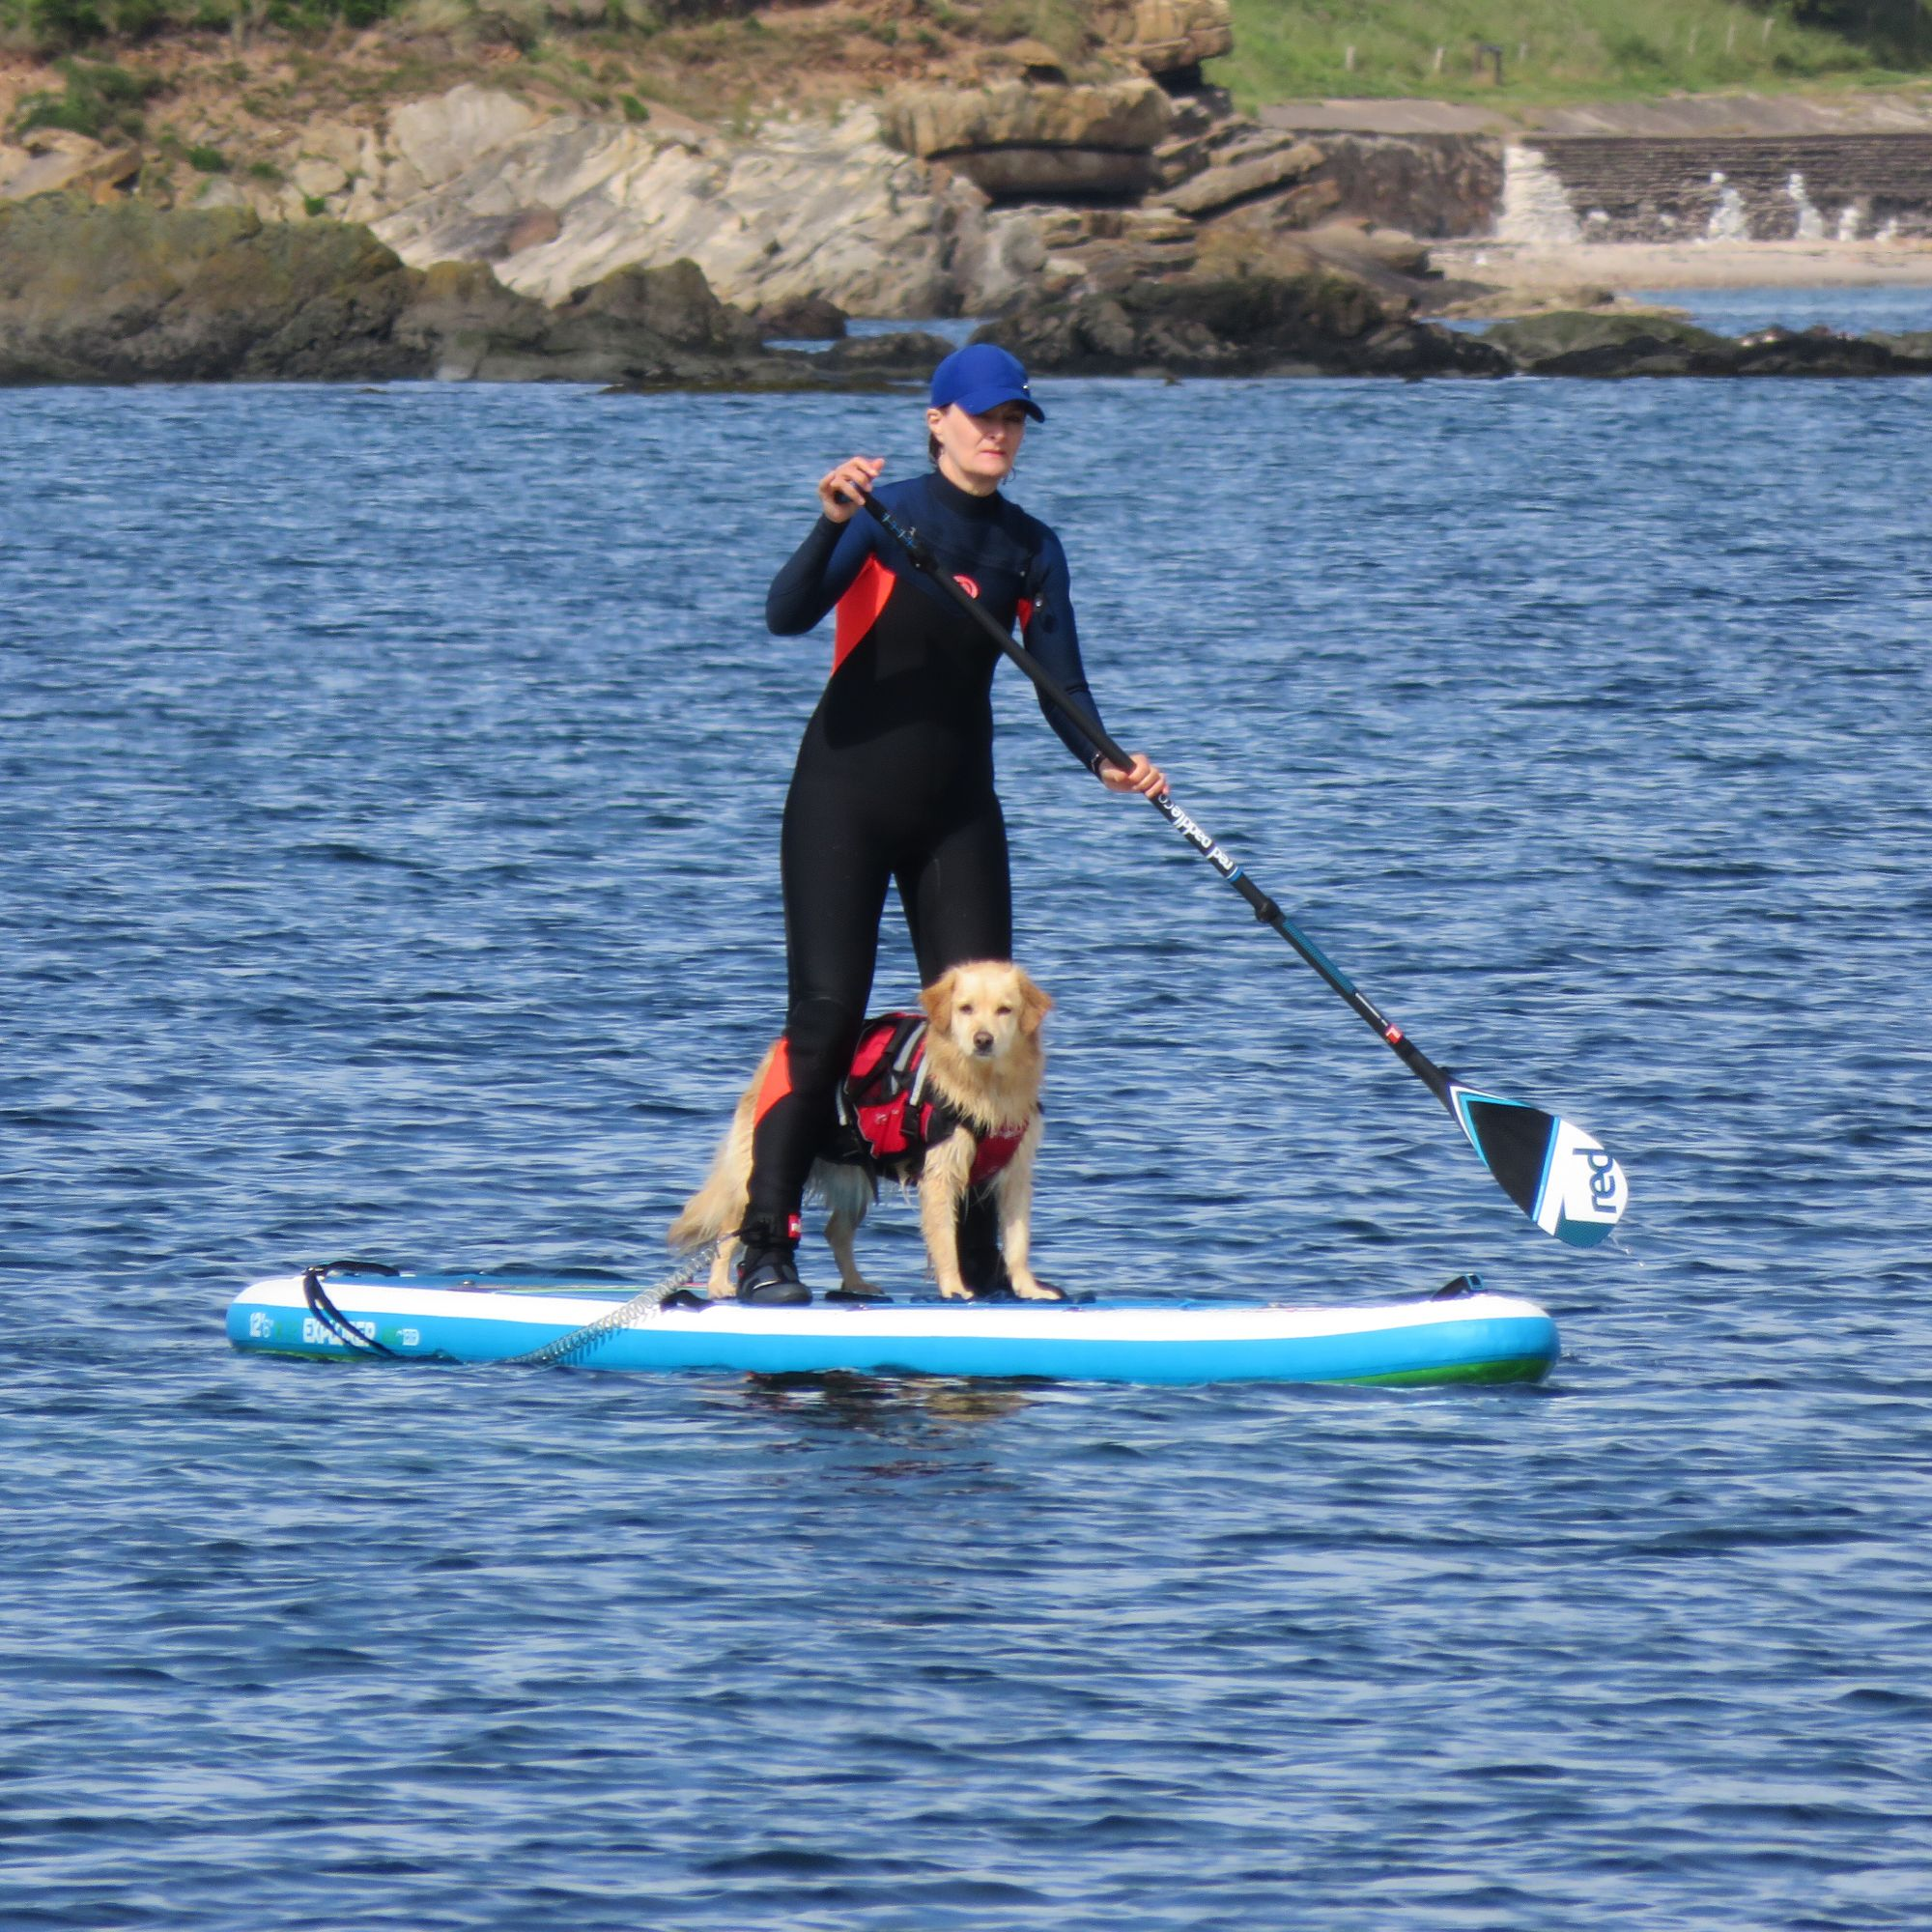 dawn and sandy paddle-boarding